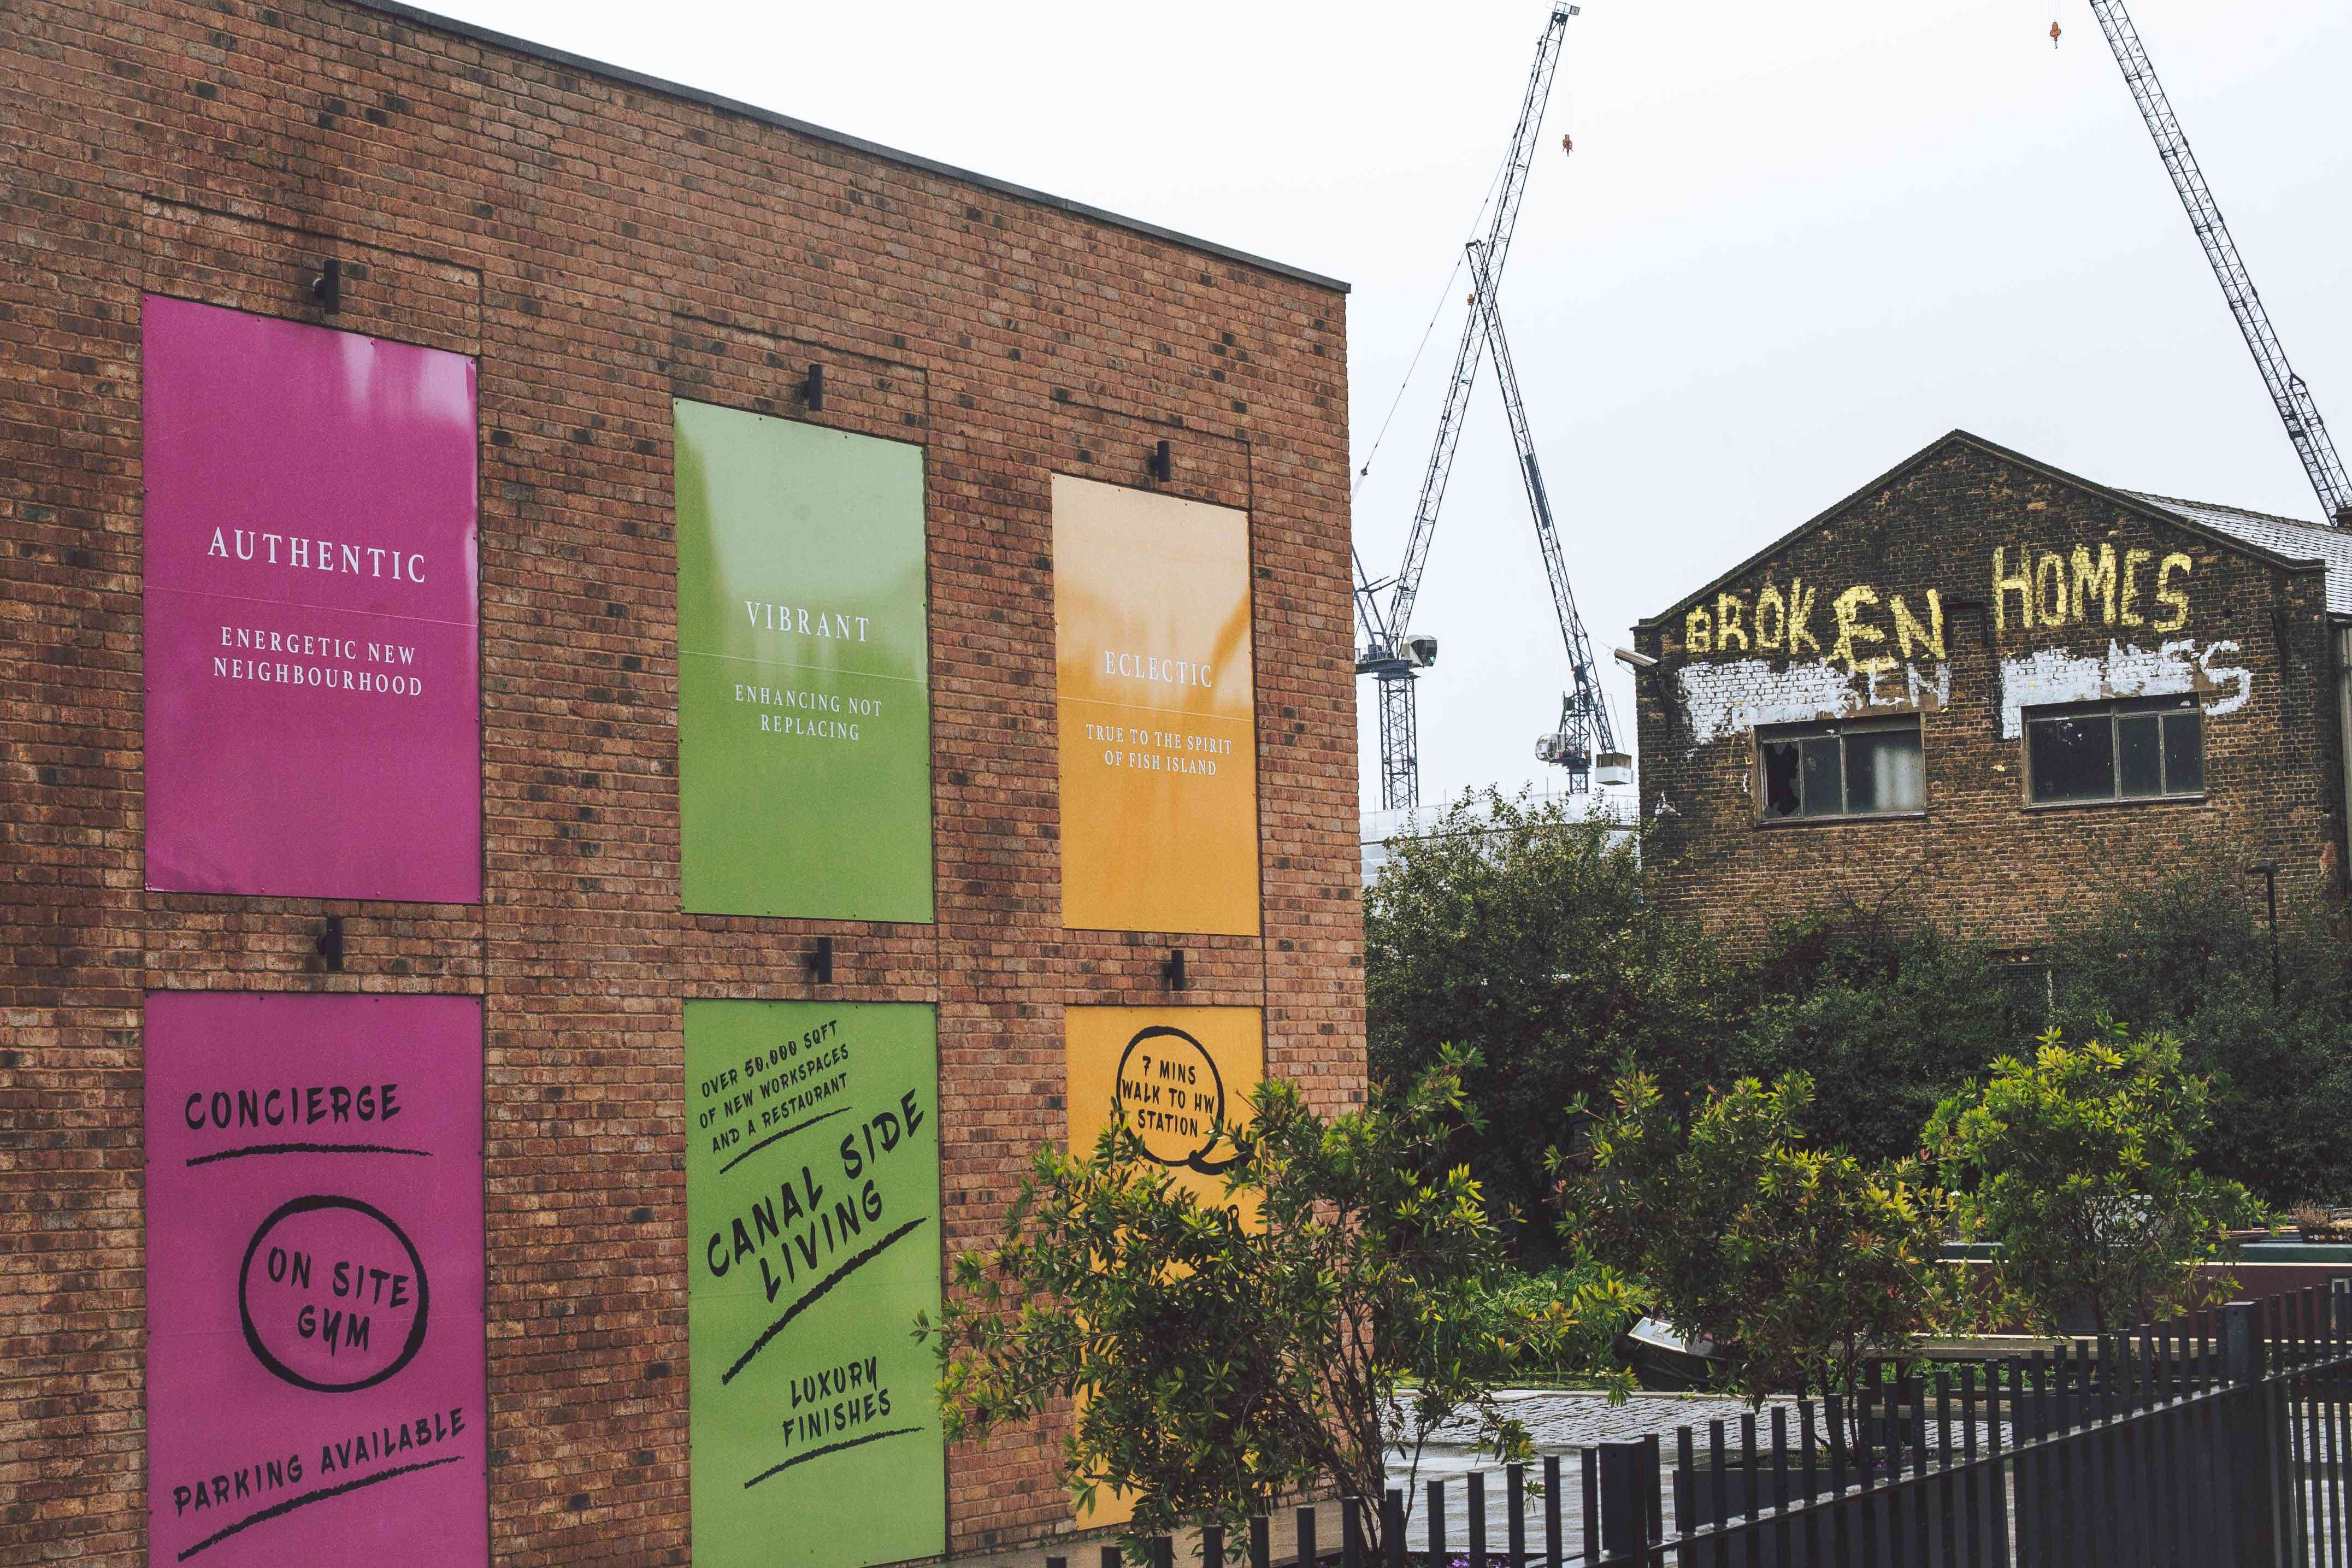 The battle to save east London: is this finally the end?